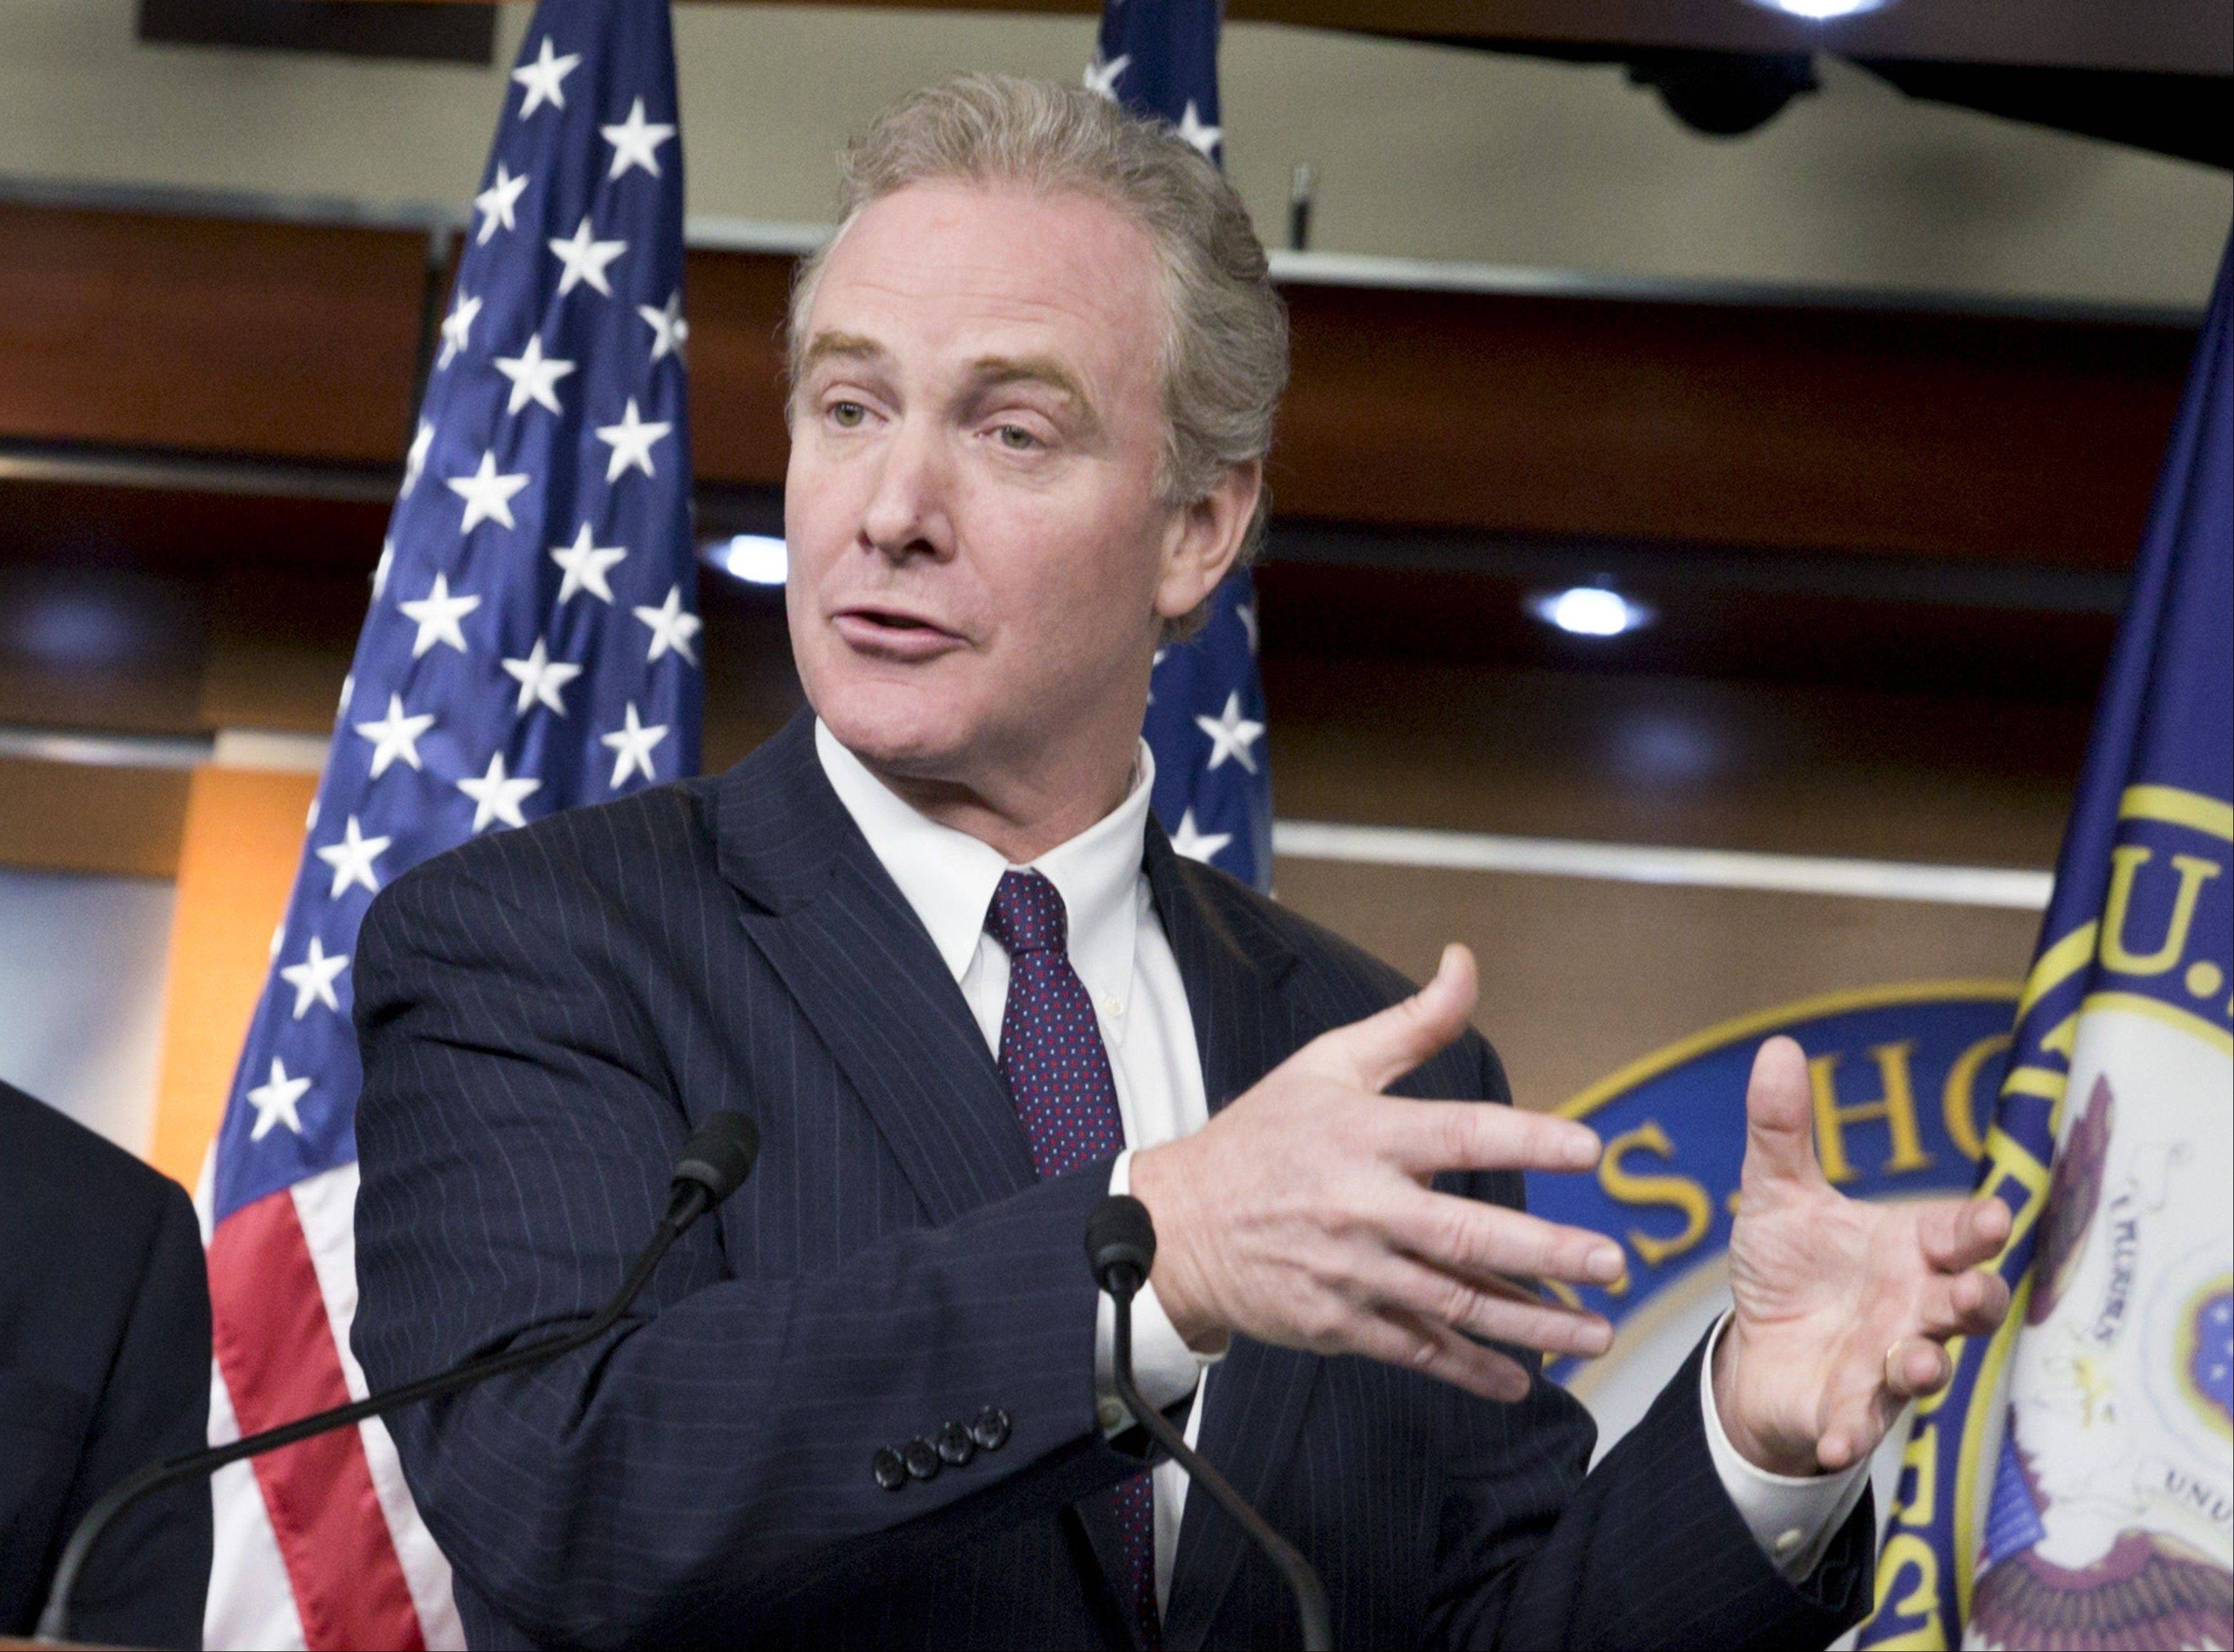 Rep. Chris Van Hollen, the ranking Democrat of the House Budget Committee said he signed off on the $6 billion increase for new federal employees hired beginning in January after Obama assured him he would propose no new retirement benefit cuts in next year's budget.